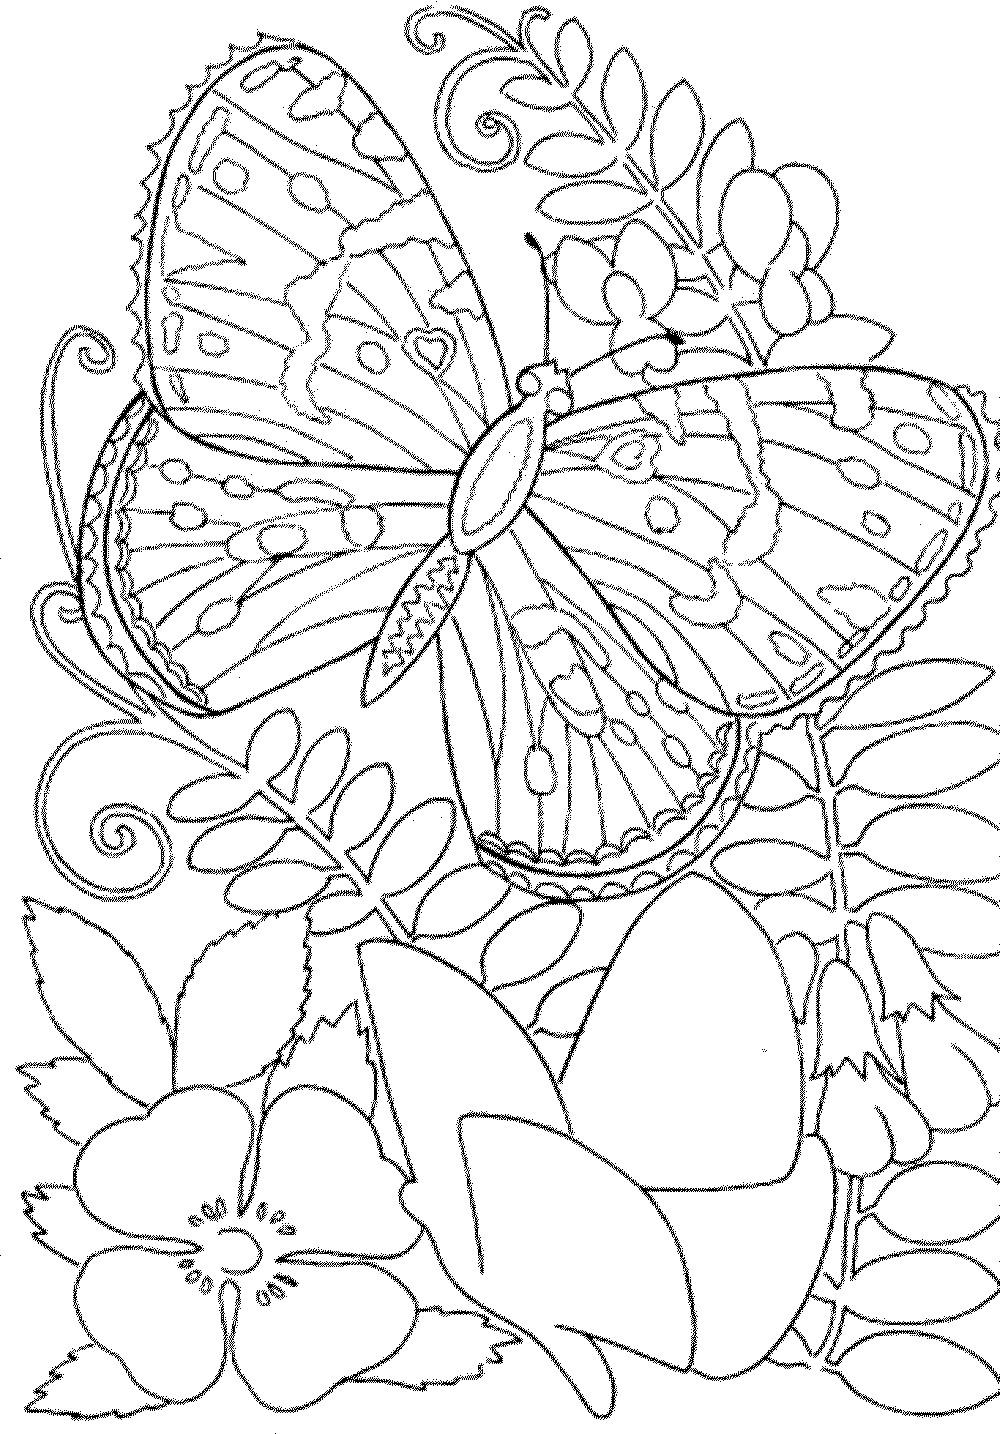 Printable Adult Coloring Books  Coloring Pages for Adults Free Printable 42 Collections